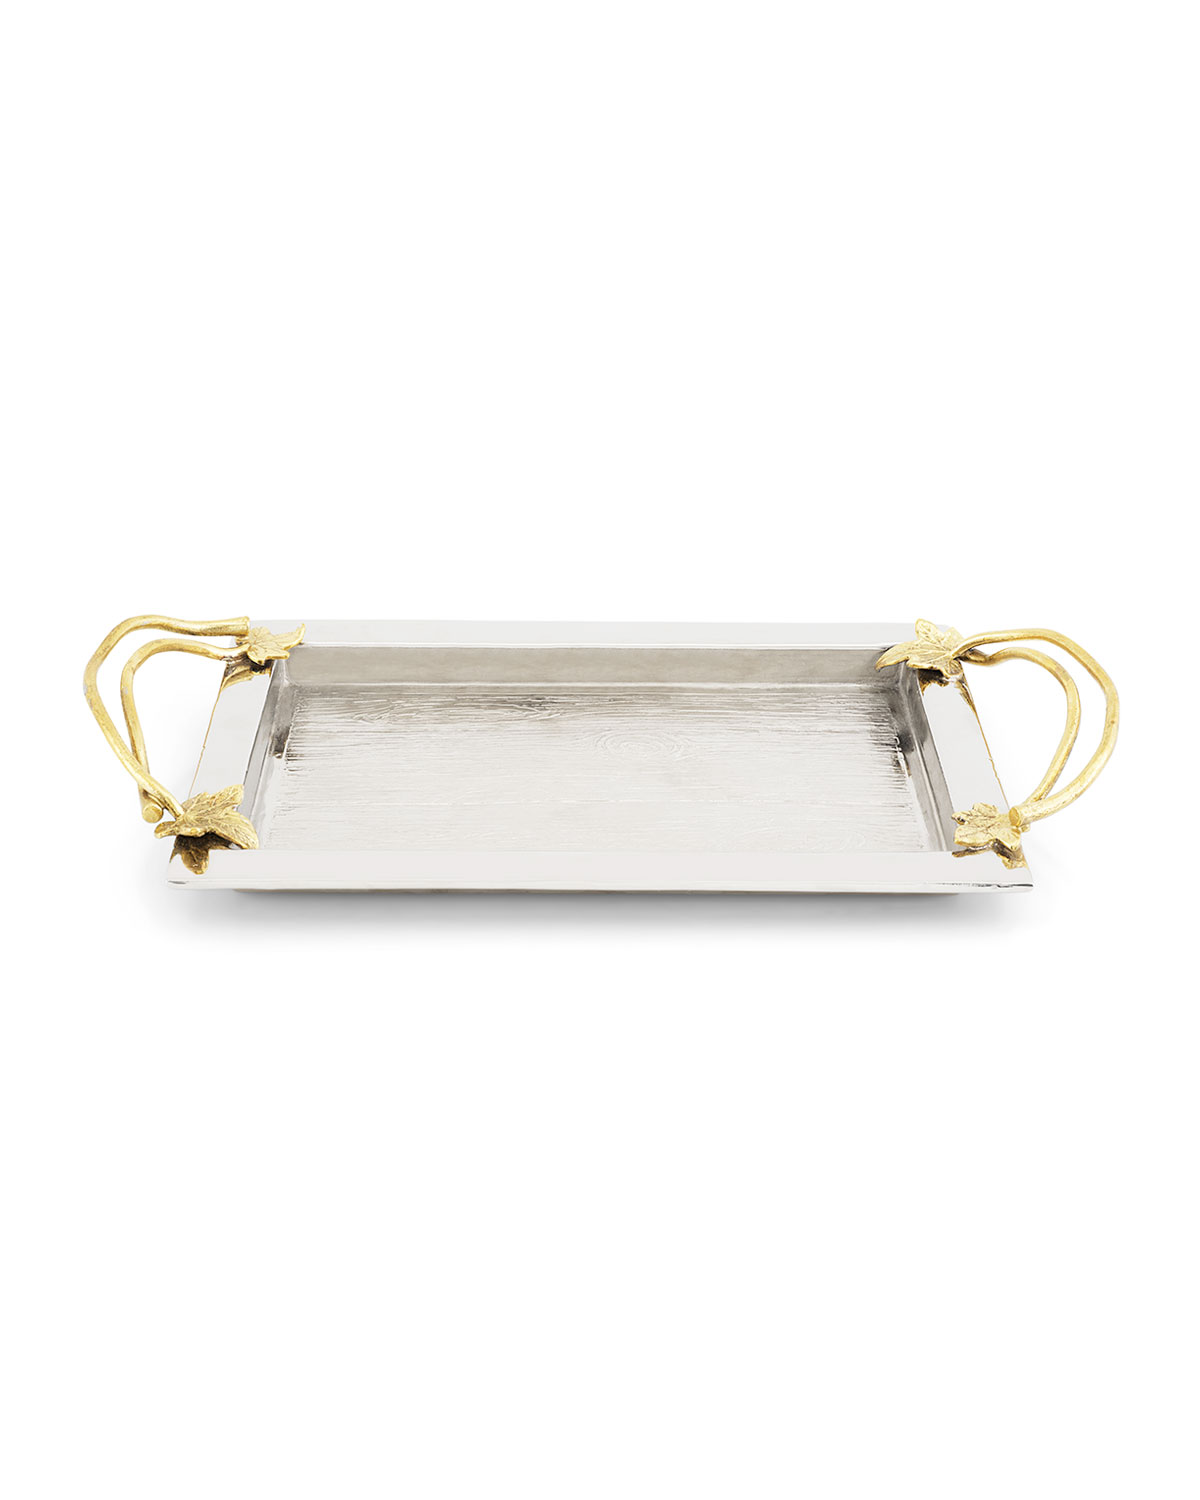 Michael Aram IVY & OAK SMALL TRAY